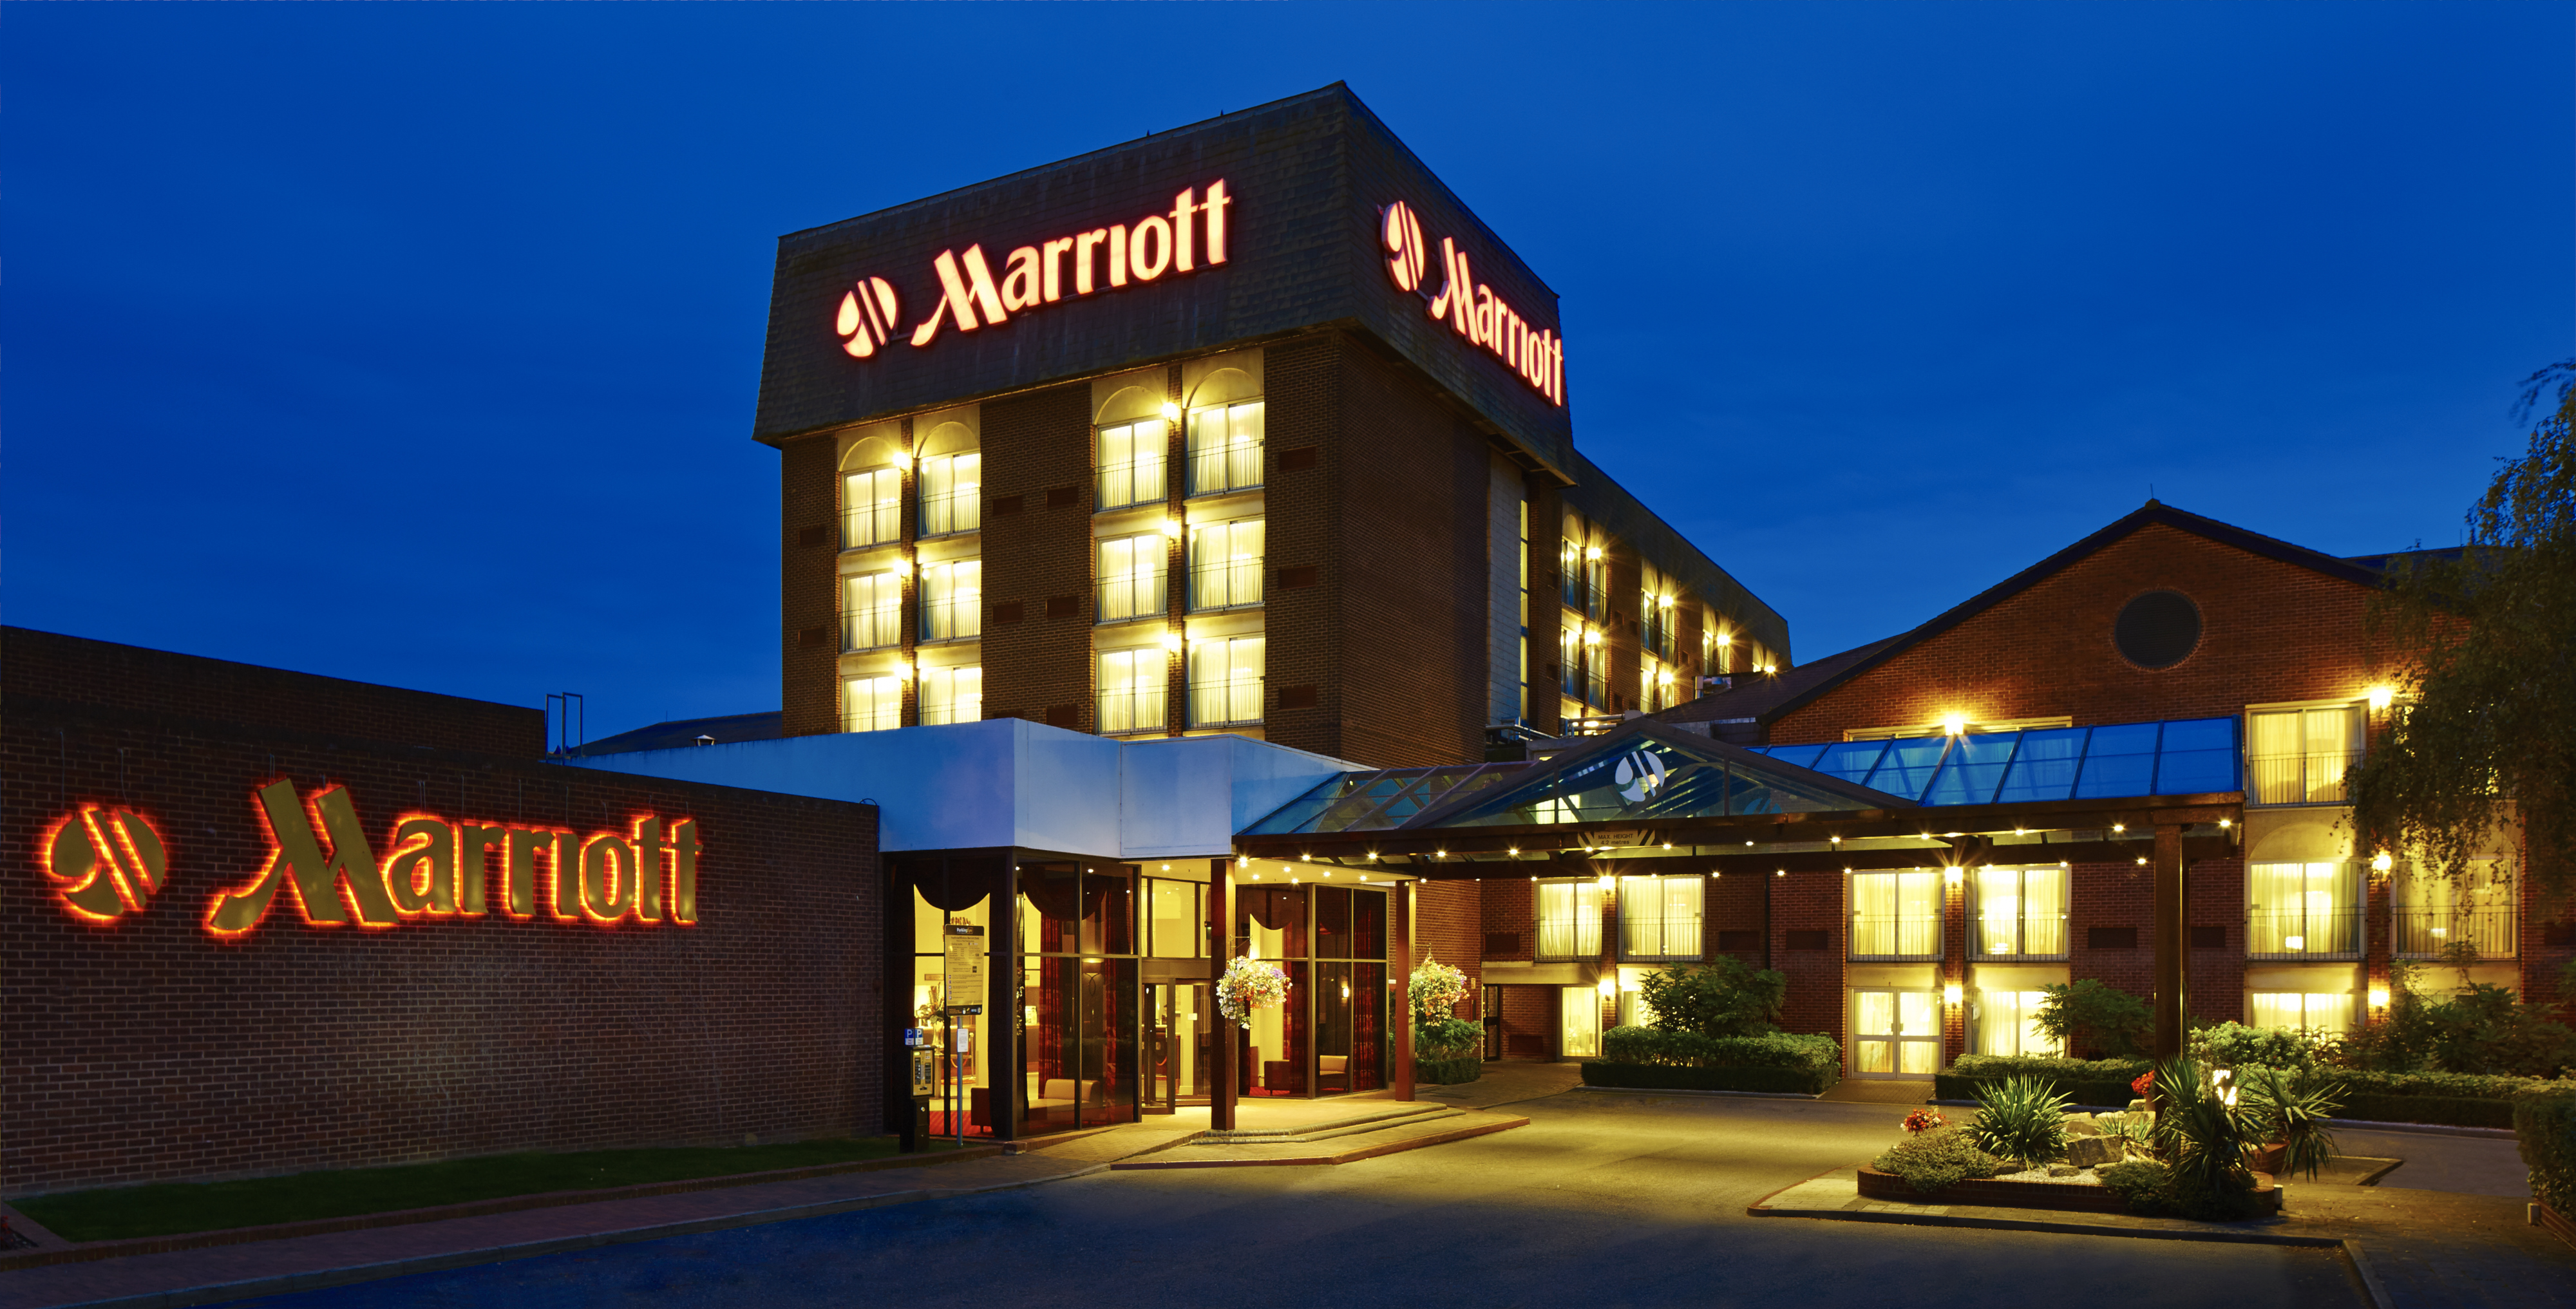 Marriott Hotel Heathrow Airport